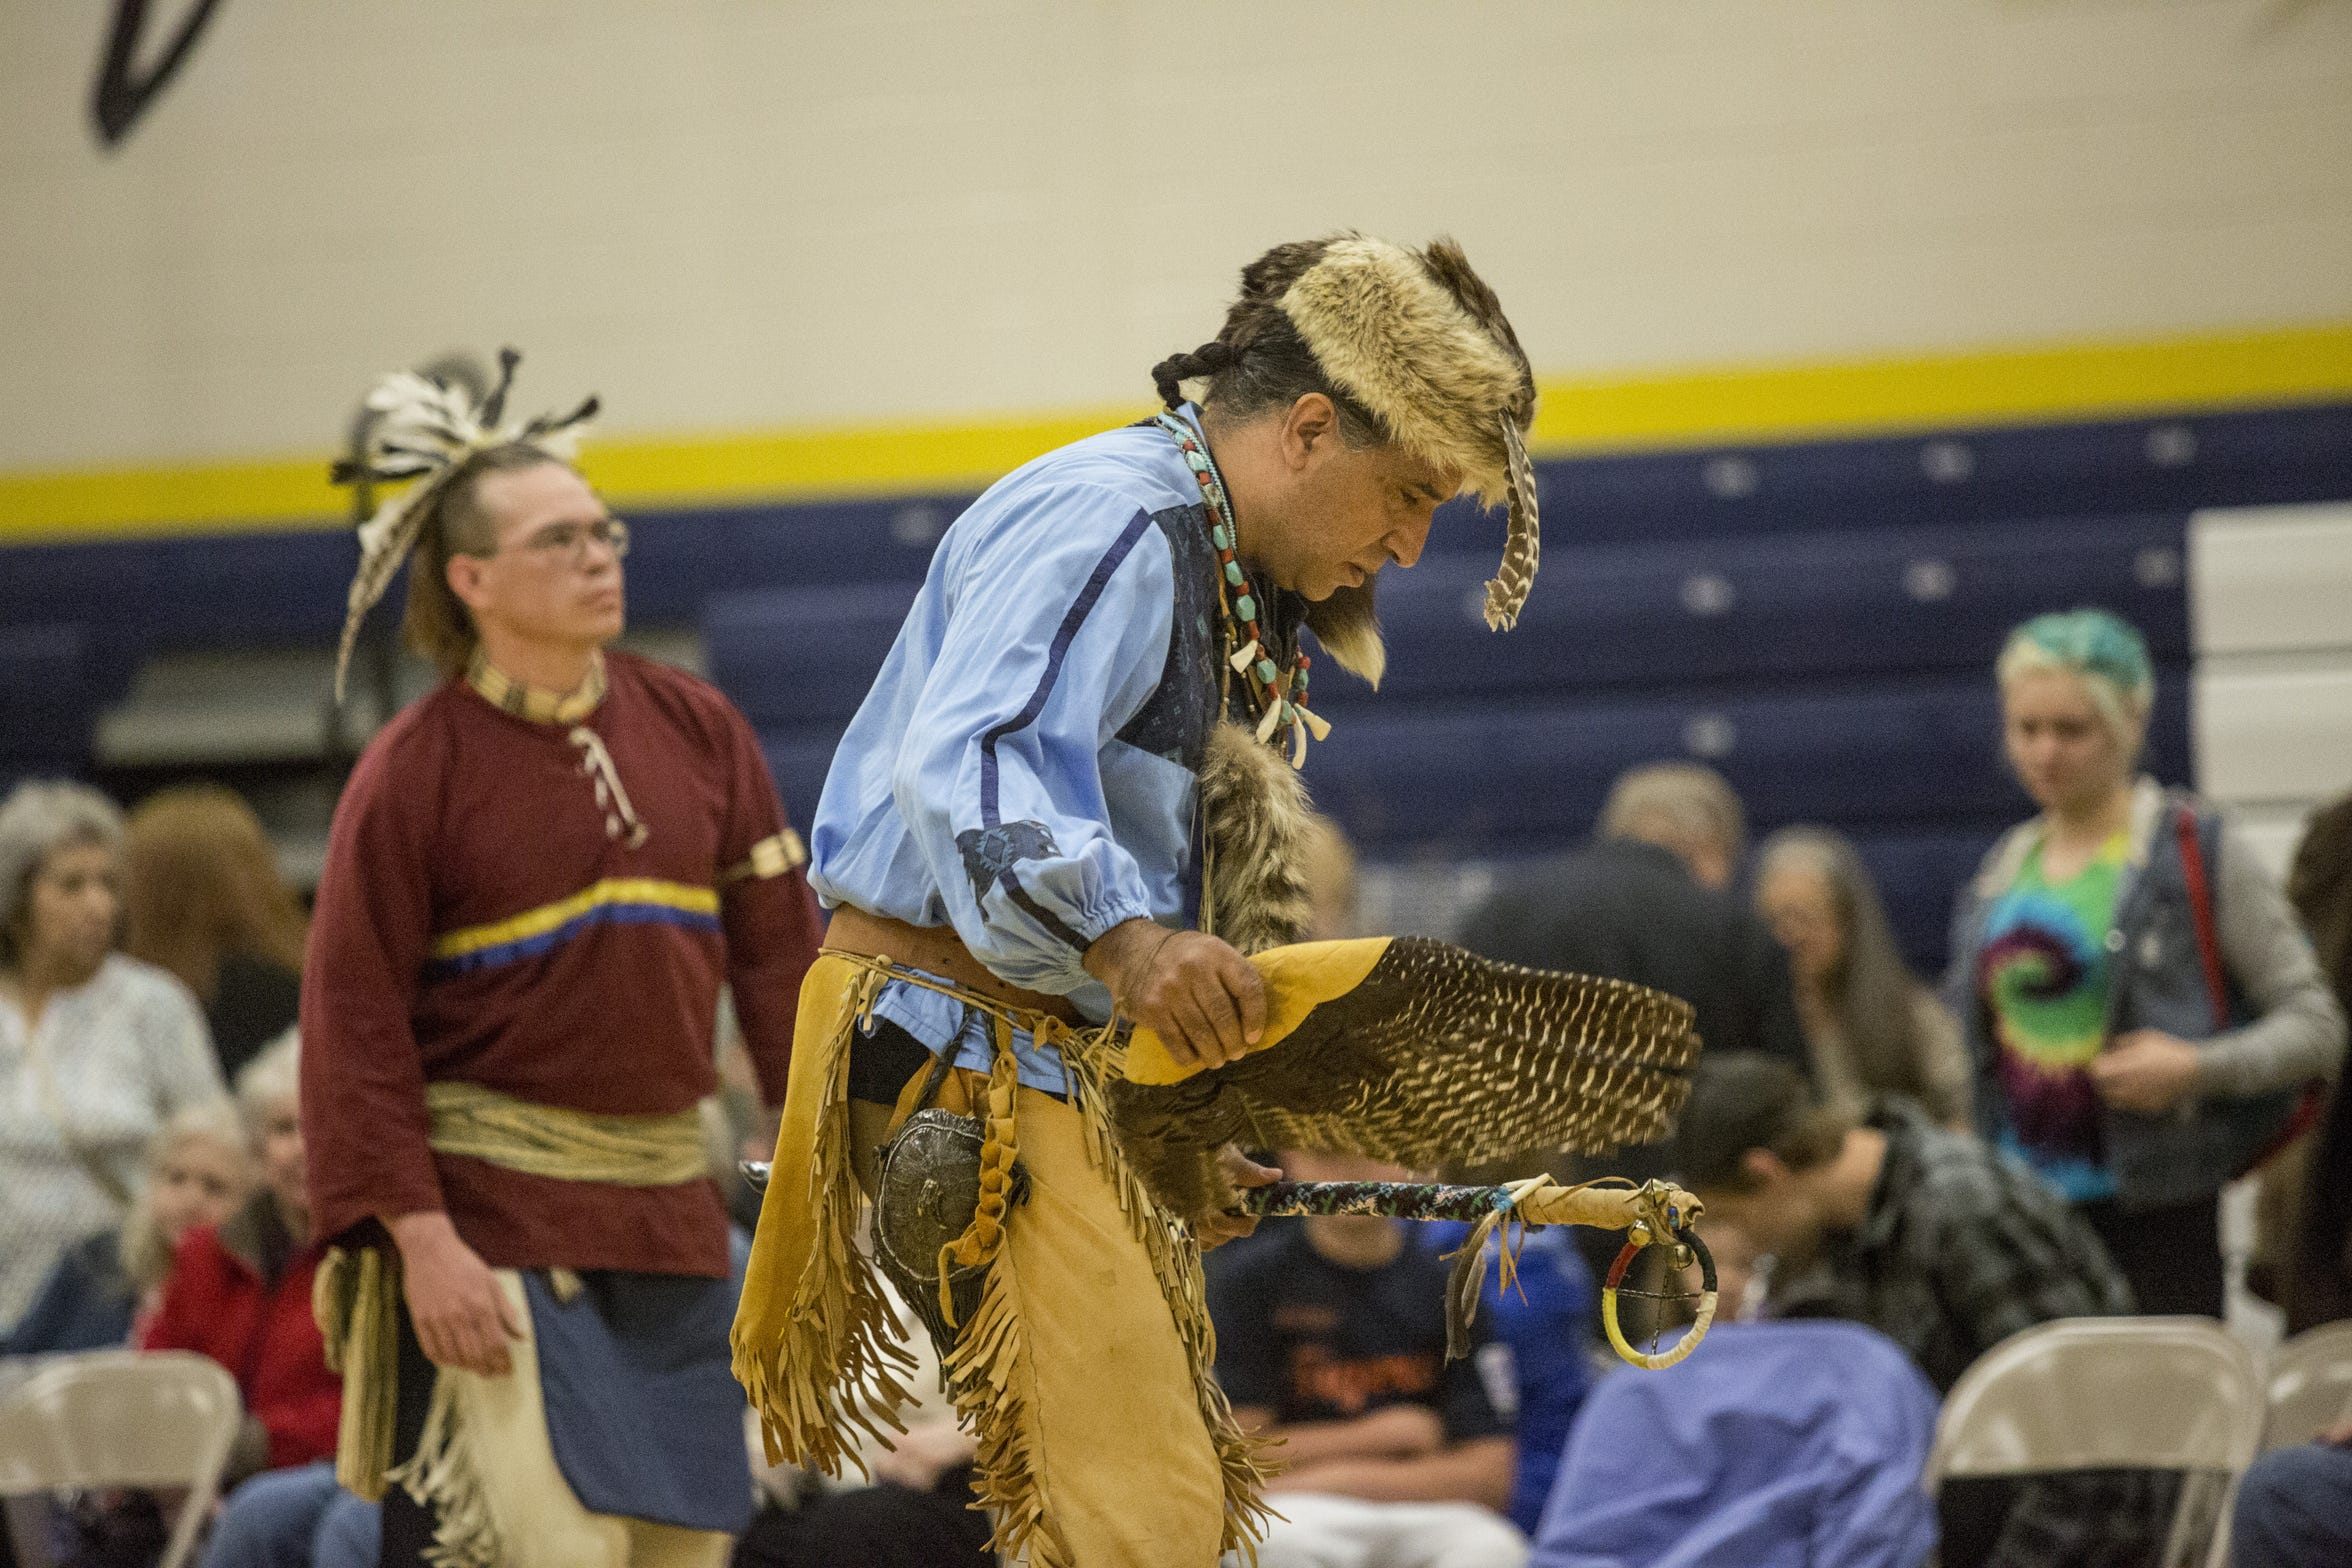 Joe Jacobs participates in the men's traditional dance during the Algonac American Indian Festival and Powwow Saturday, April 30, 2016, at Algonac High School.